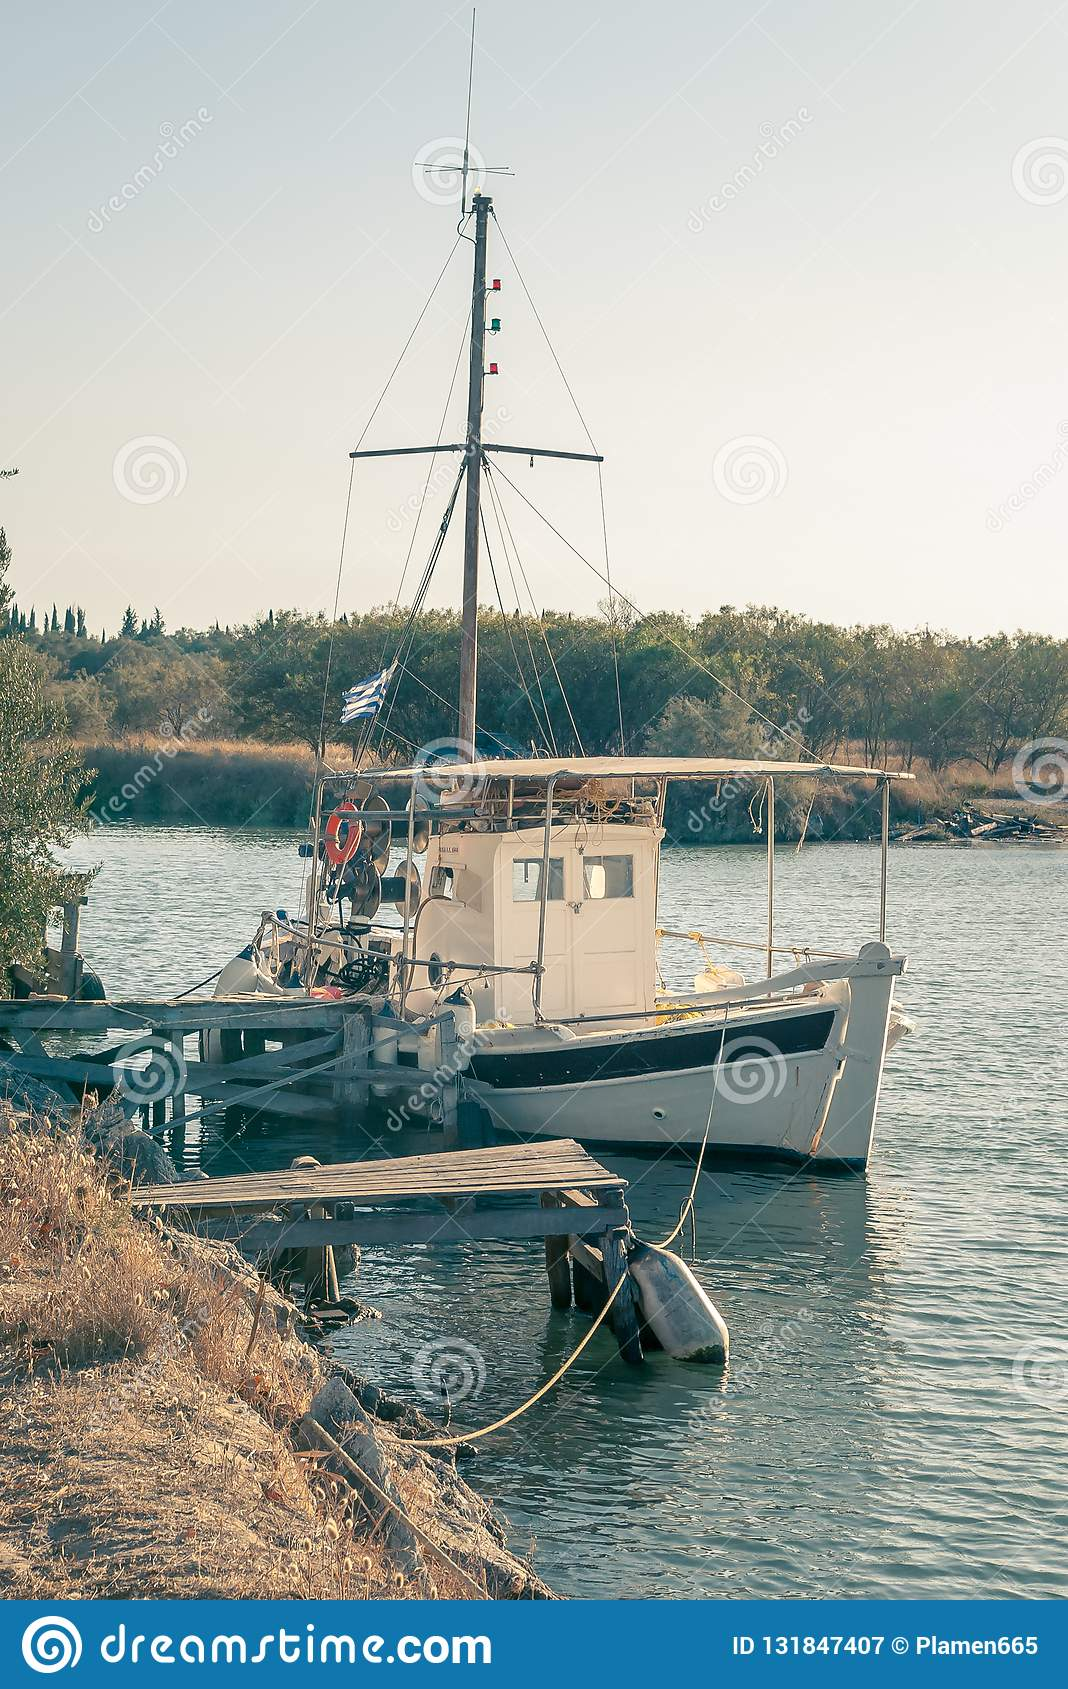 A fishing boat tied to a small wooden pier .